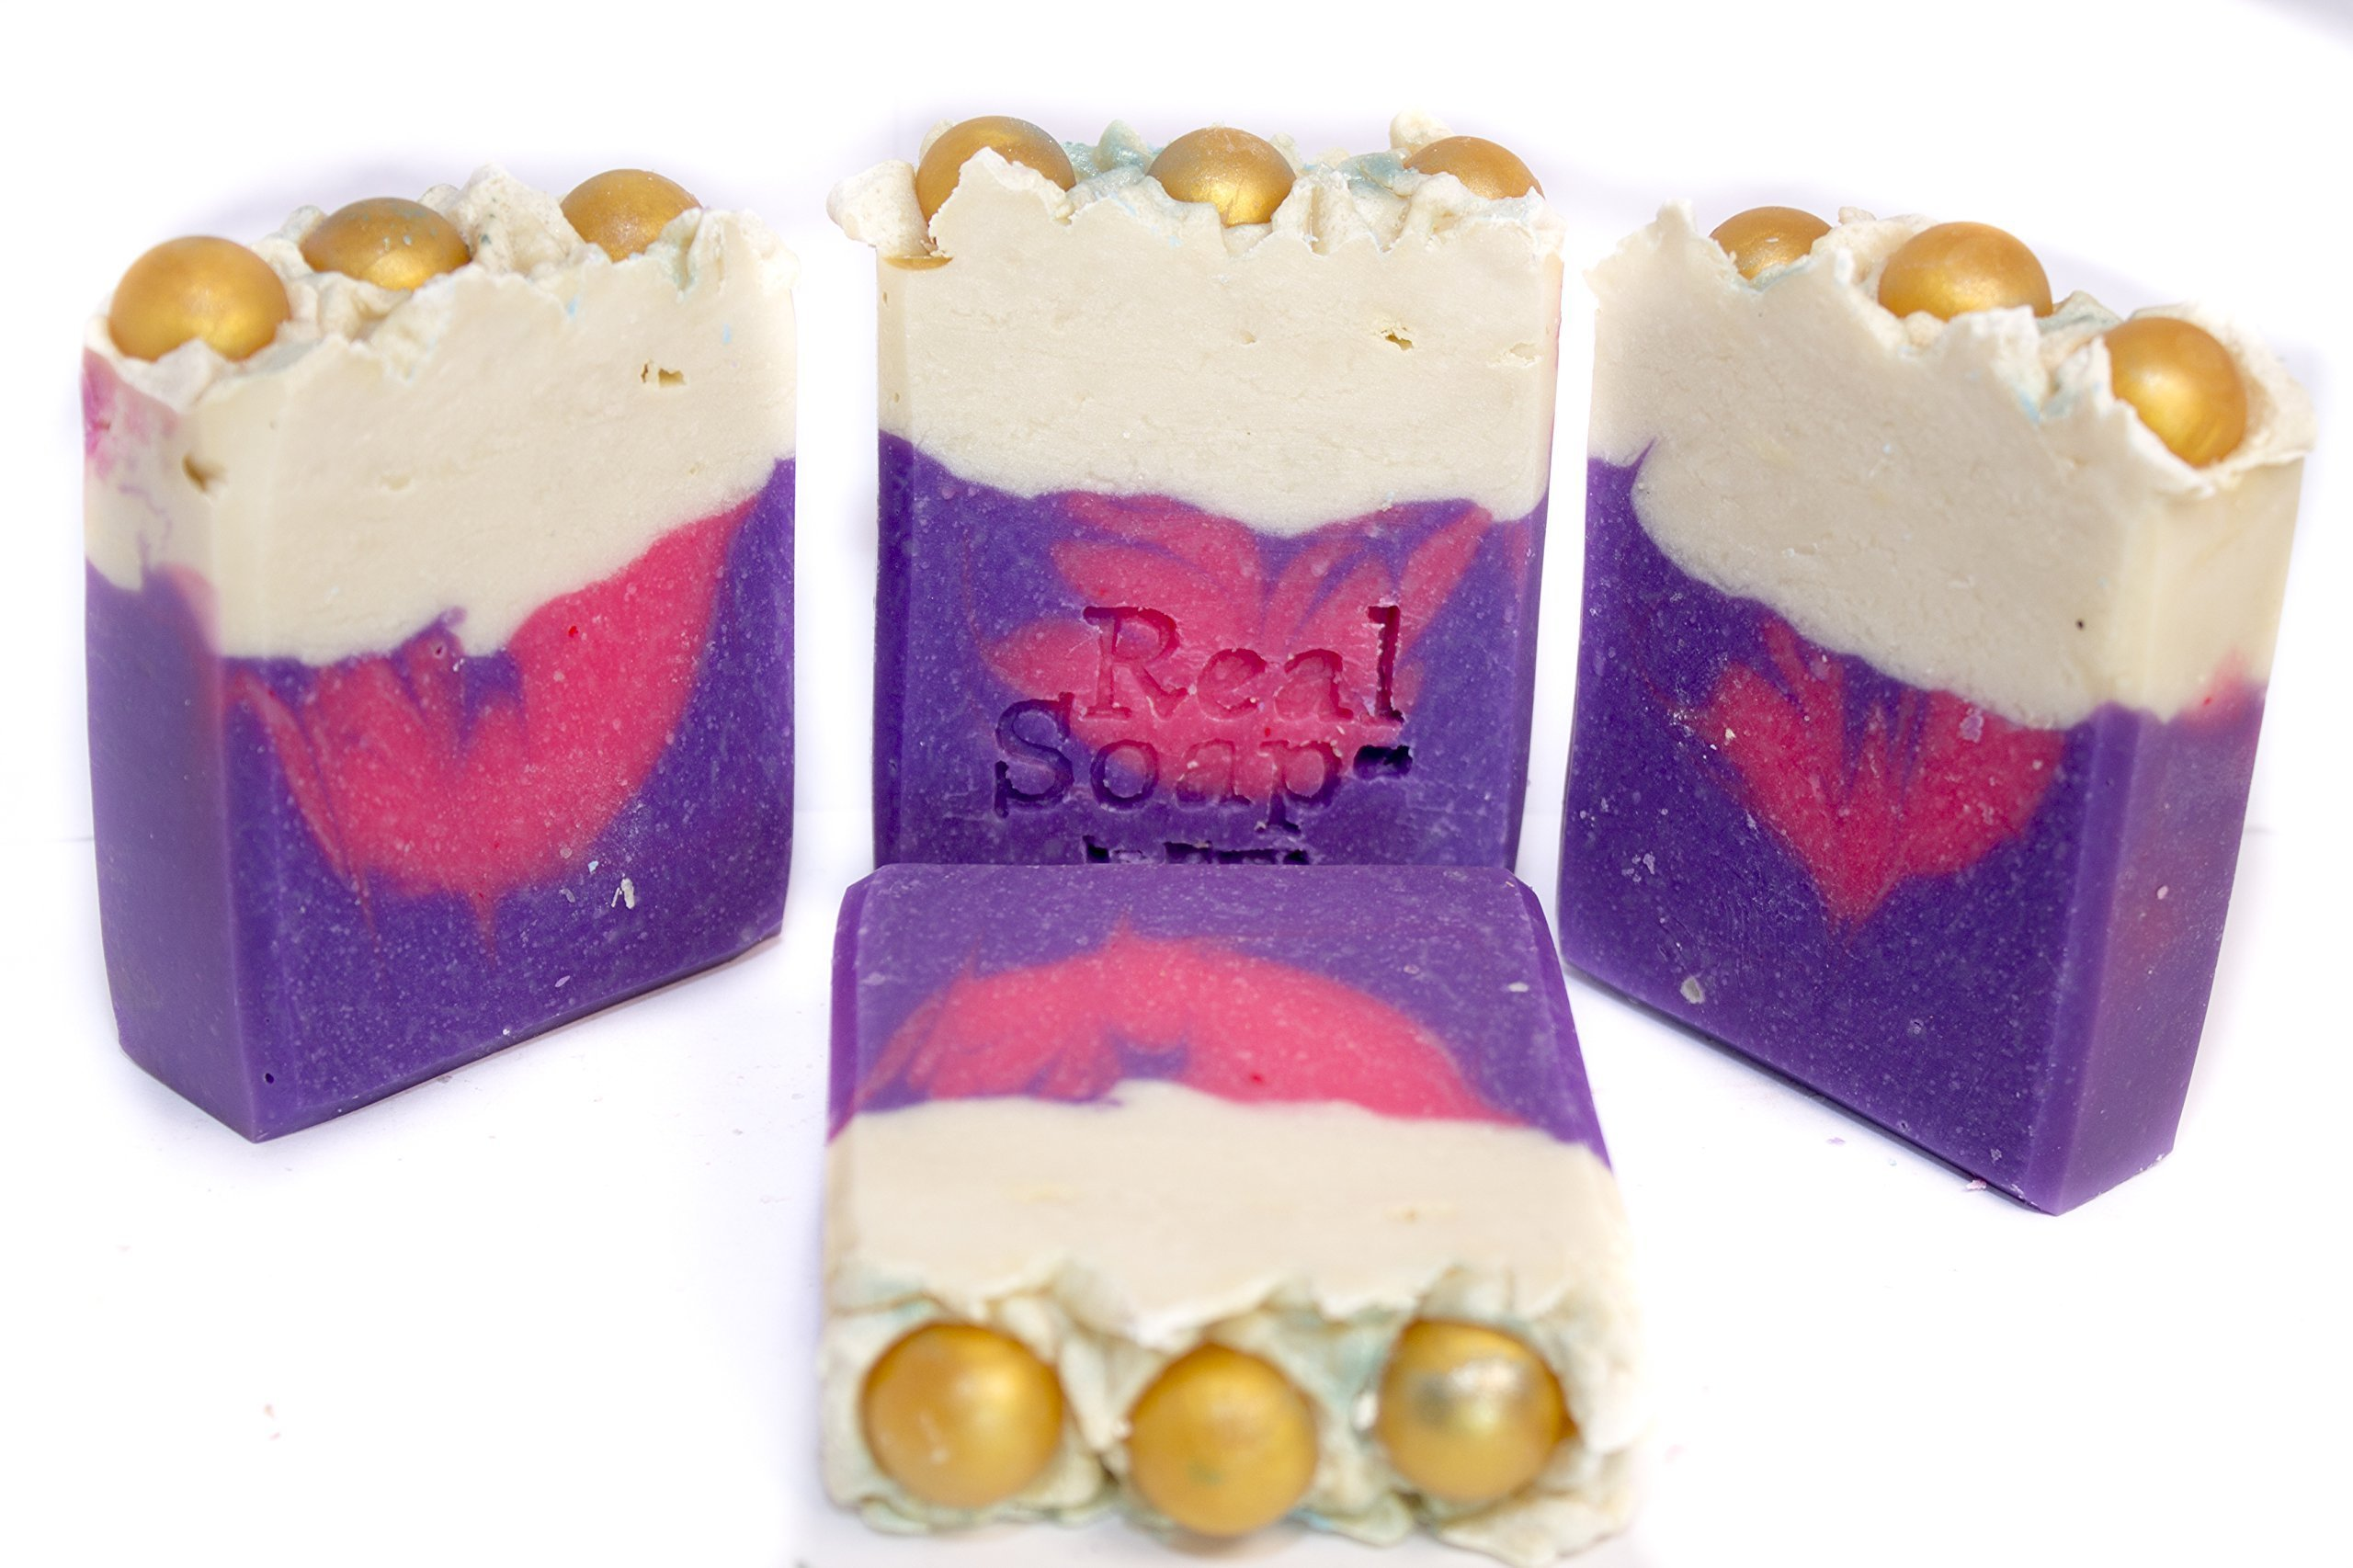 Handmade Soap Bars for Body (4pk) Cold Process, Shea Butter, Floral fragrance, Pink & Purple Swirl